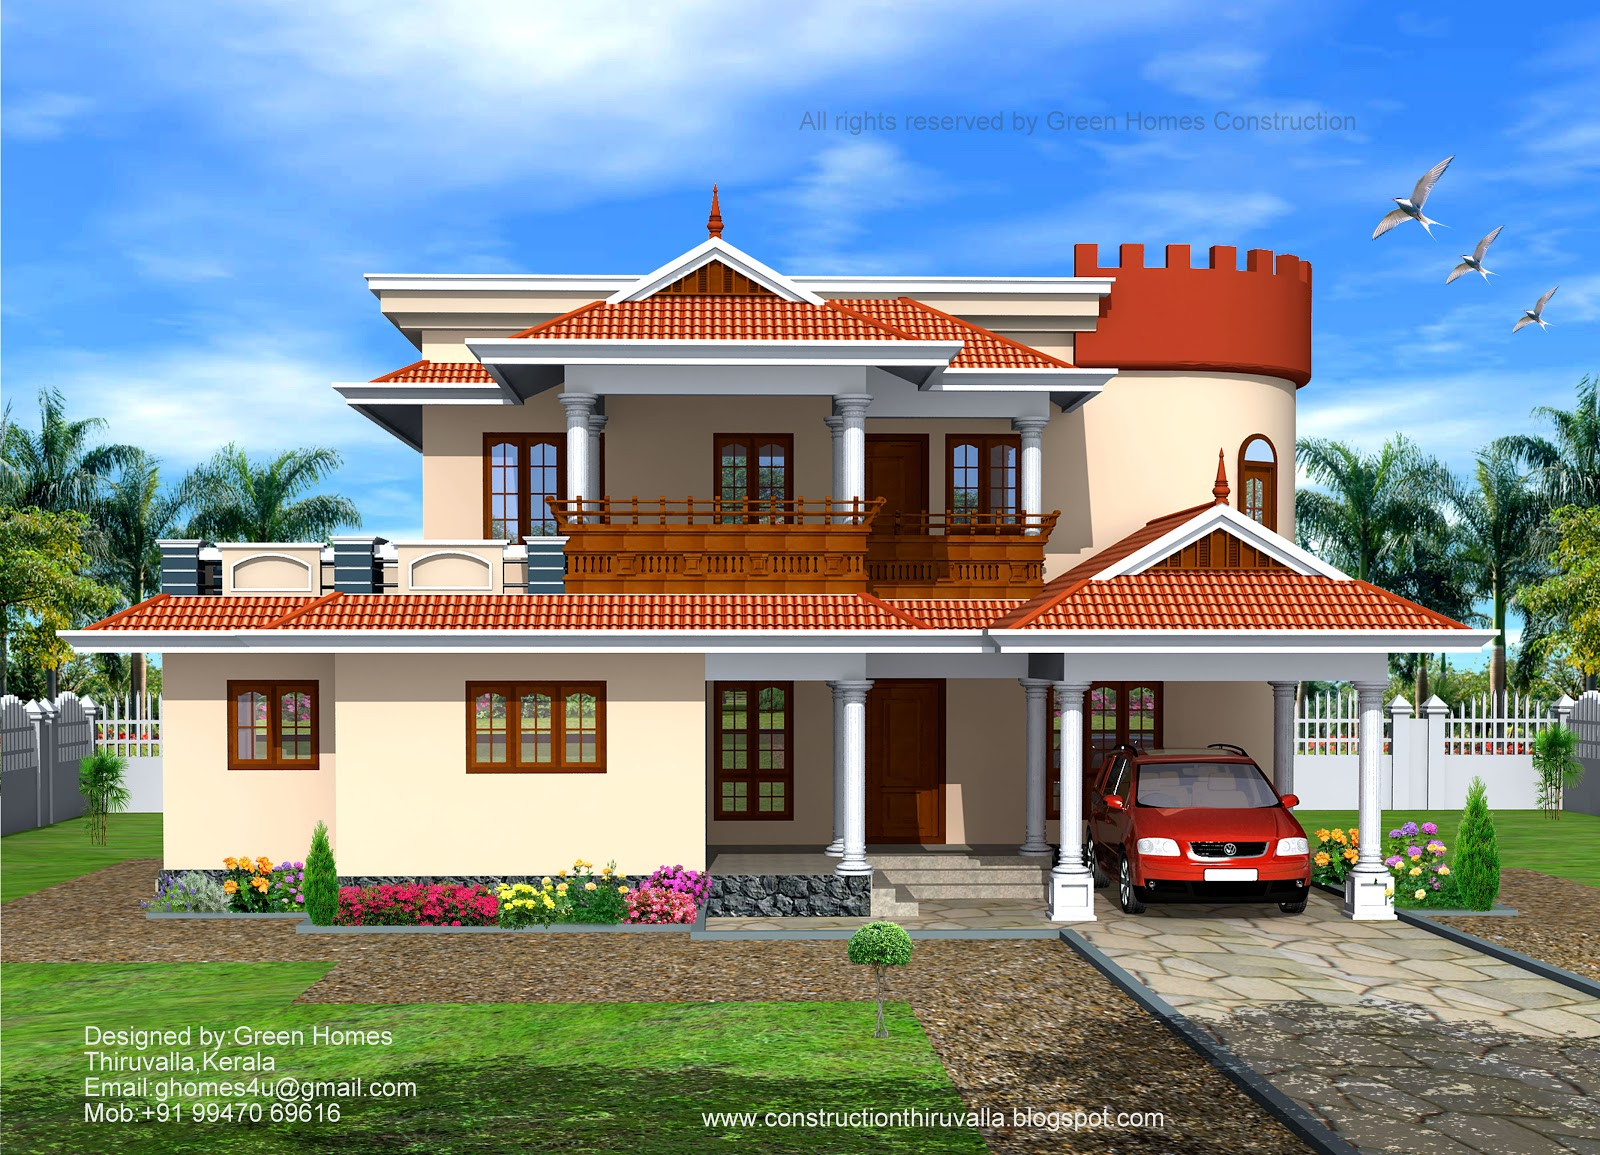 Green homes october 2012 for Designs of houses in india